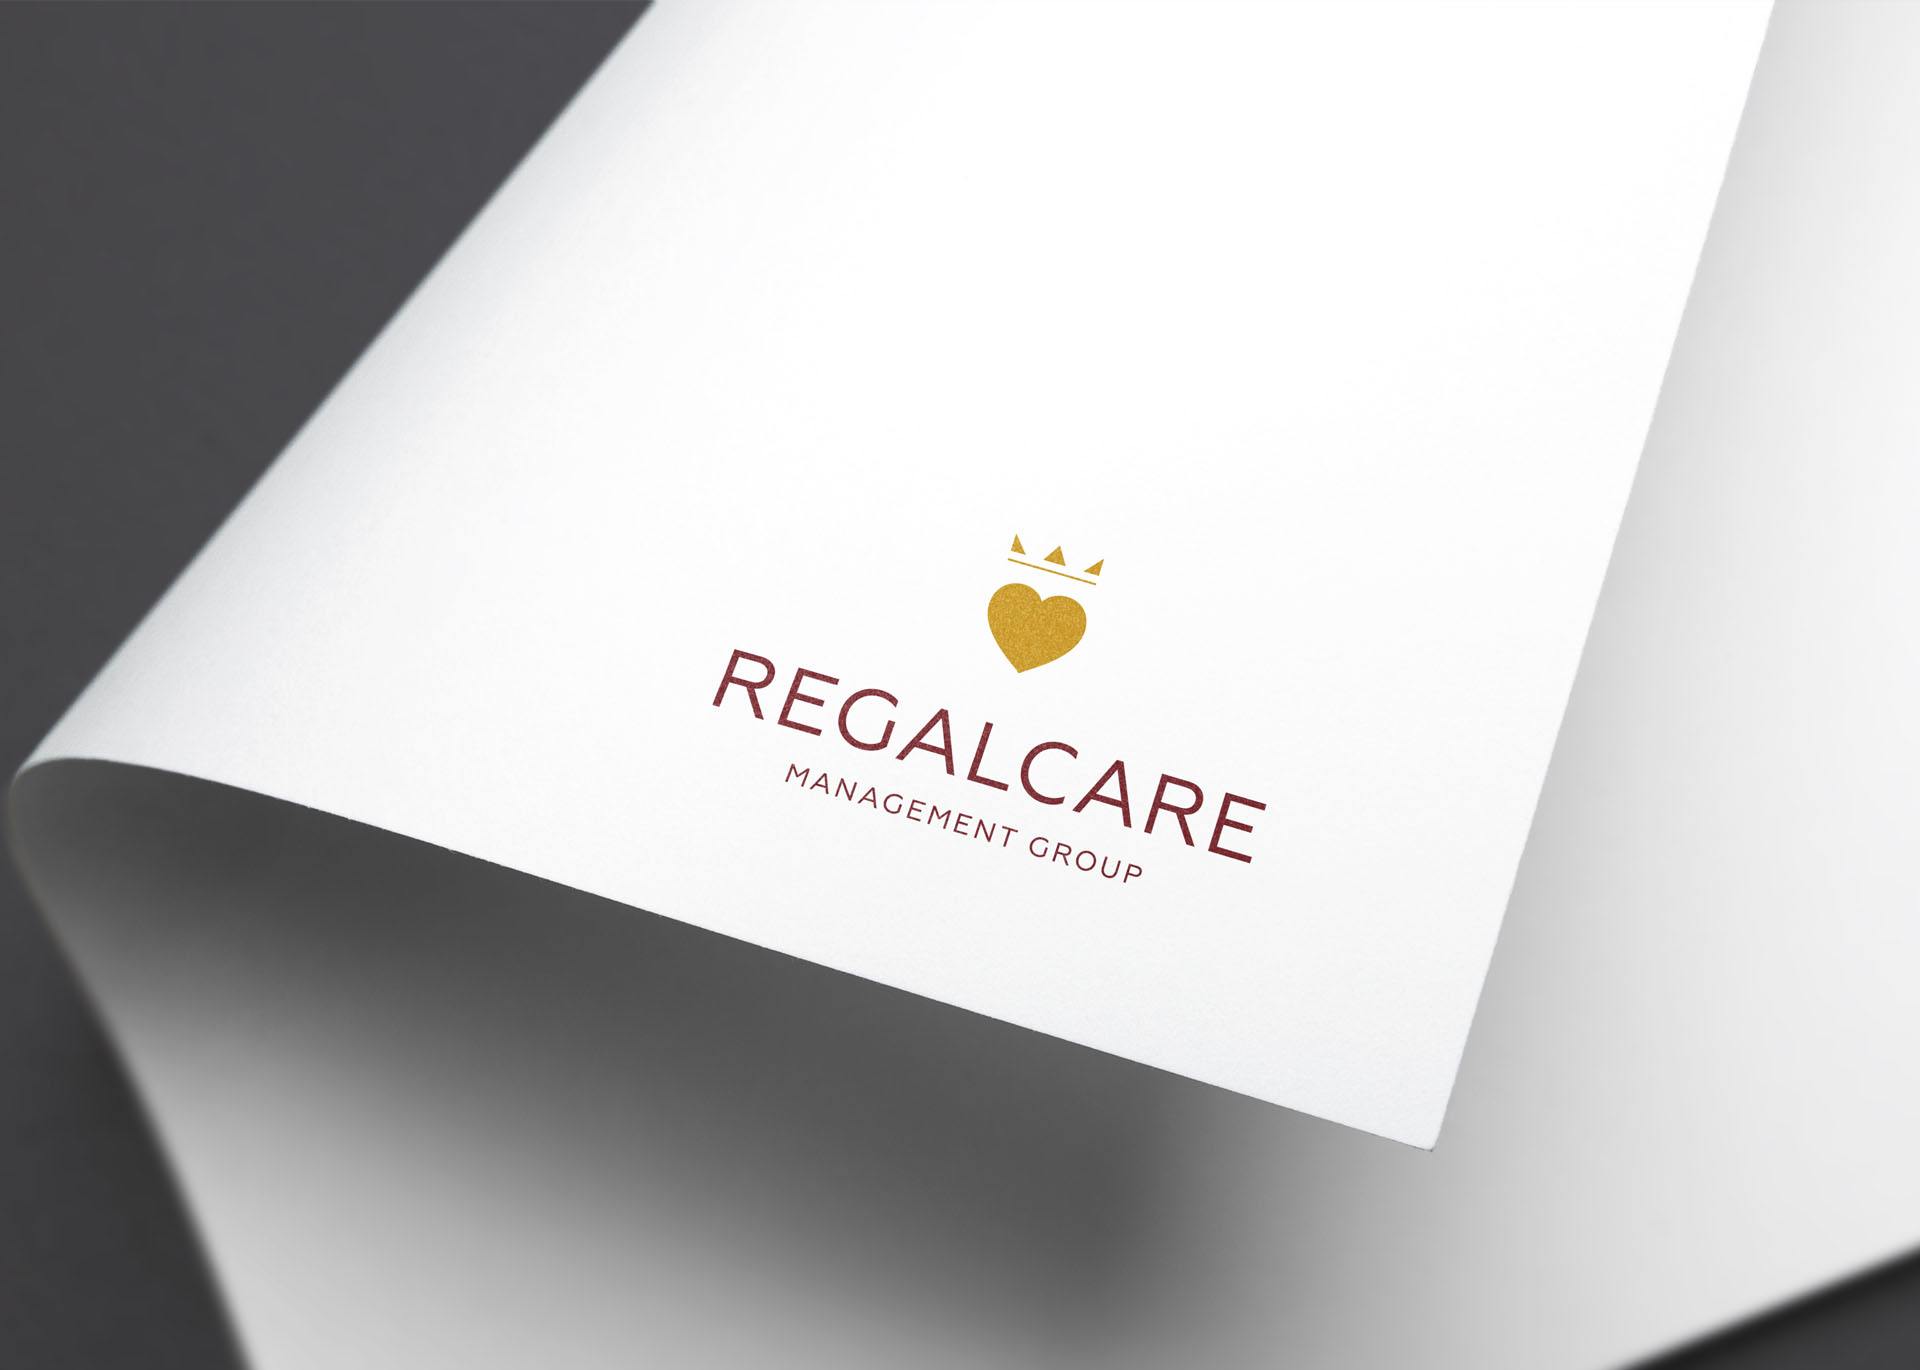 RegalCare Management Group